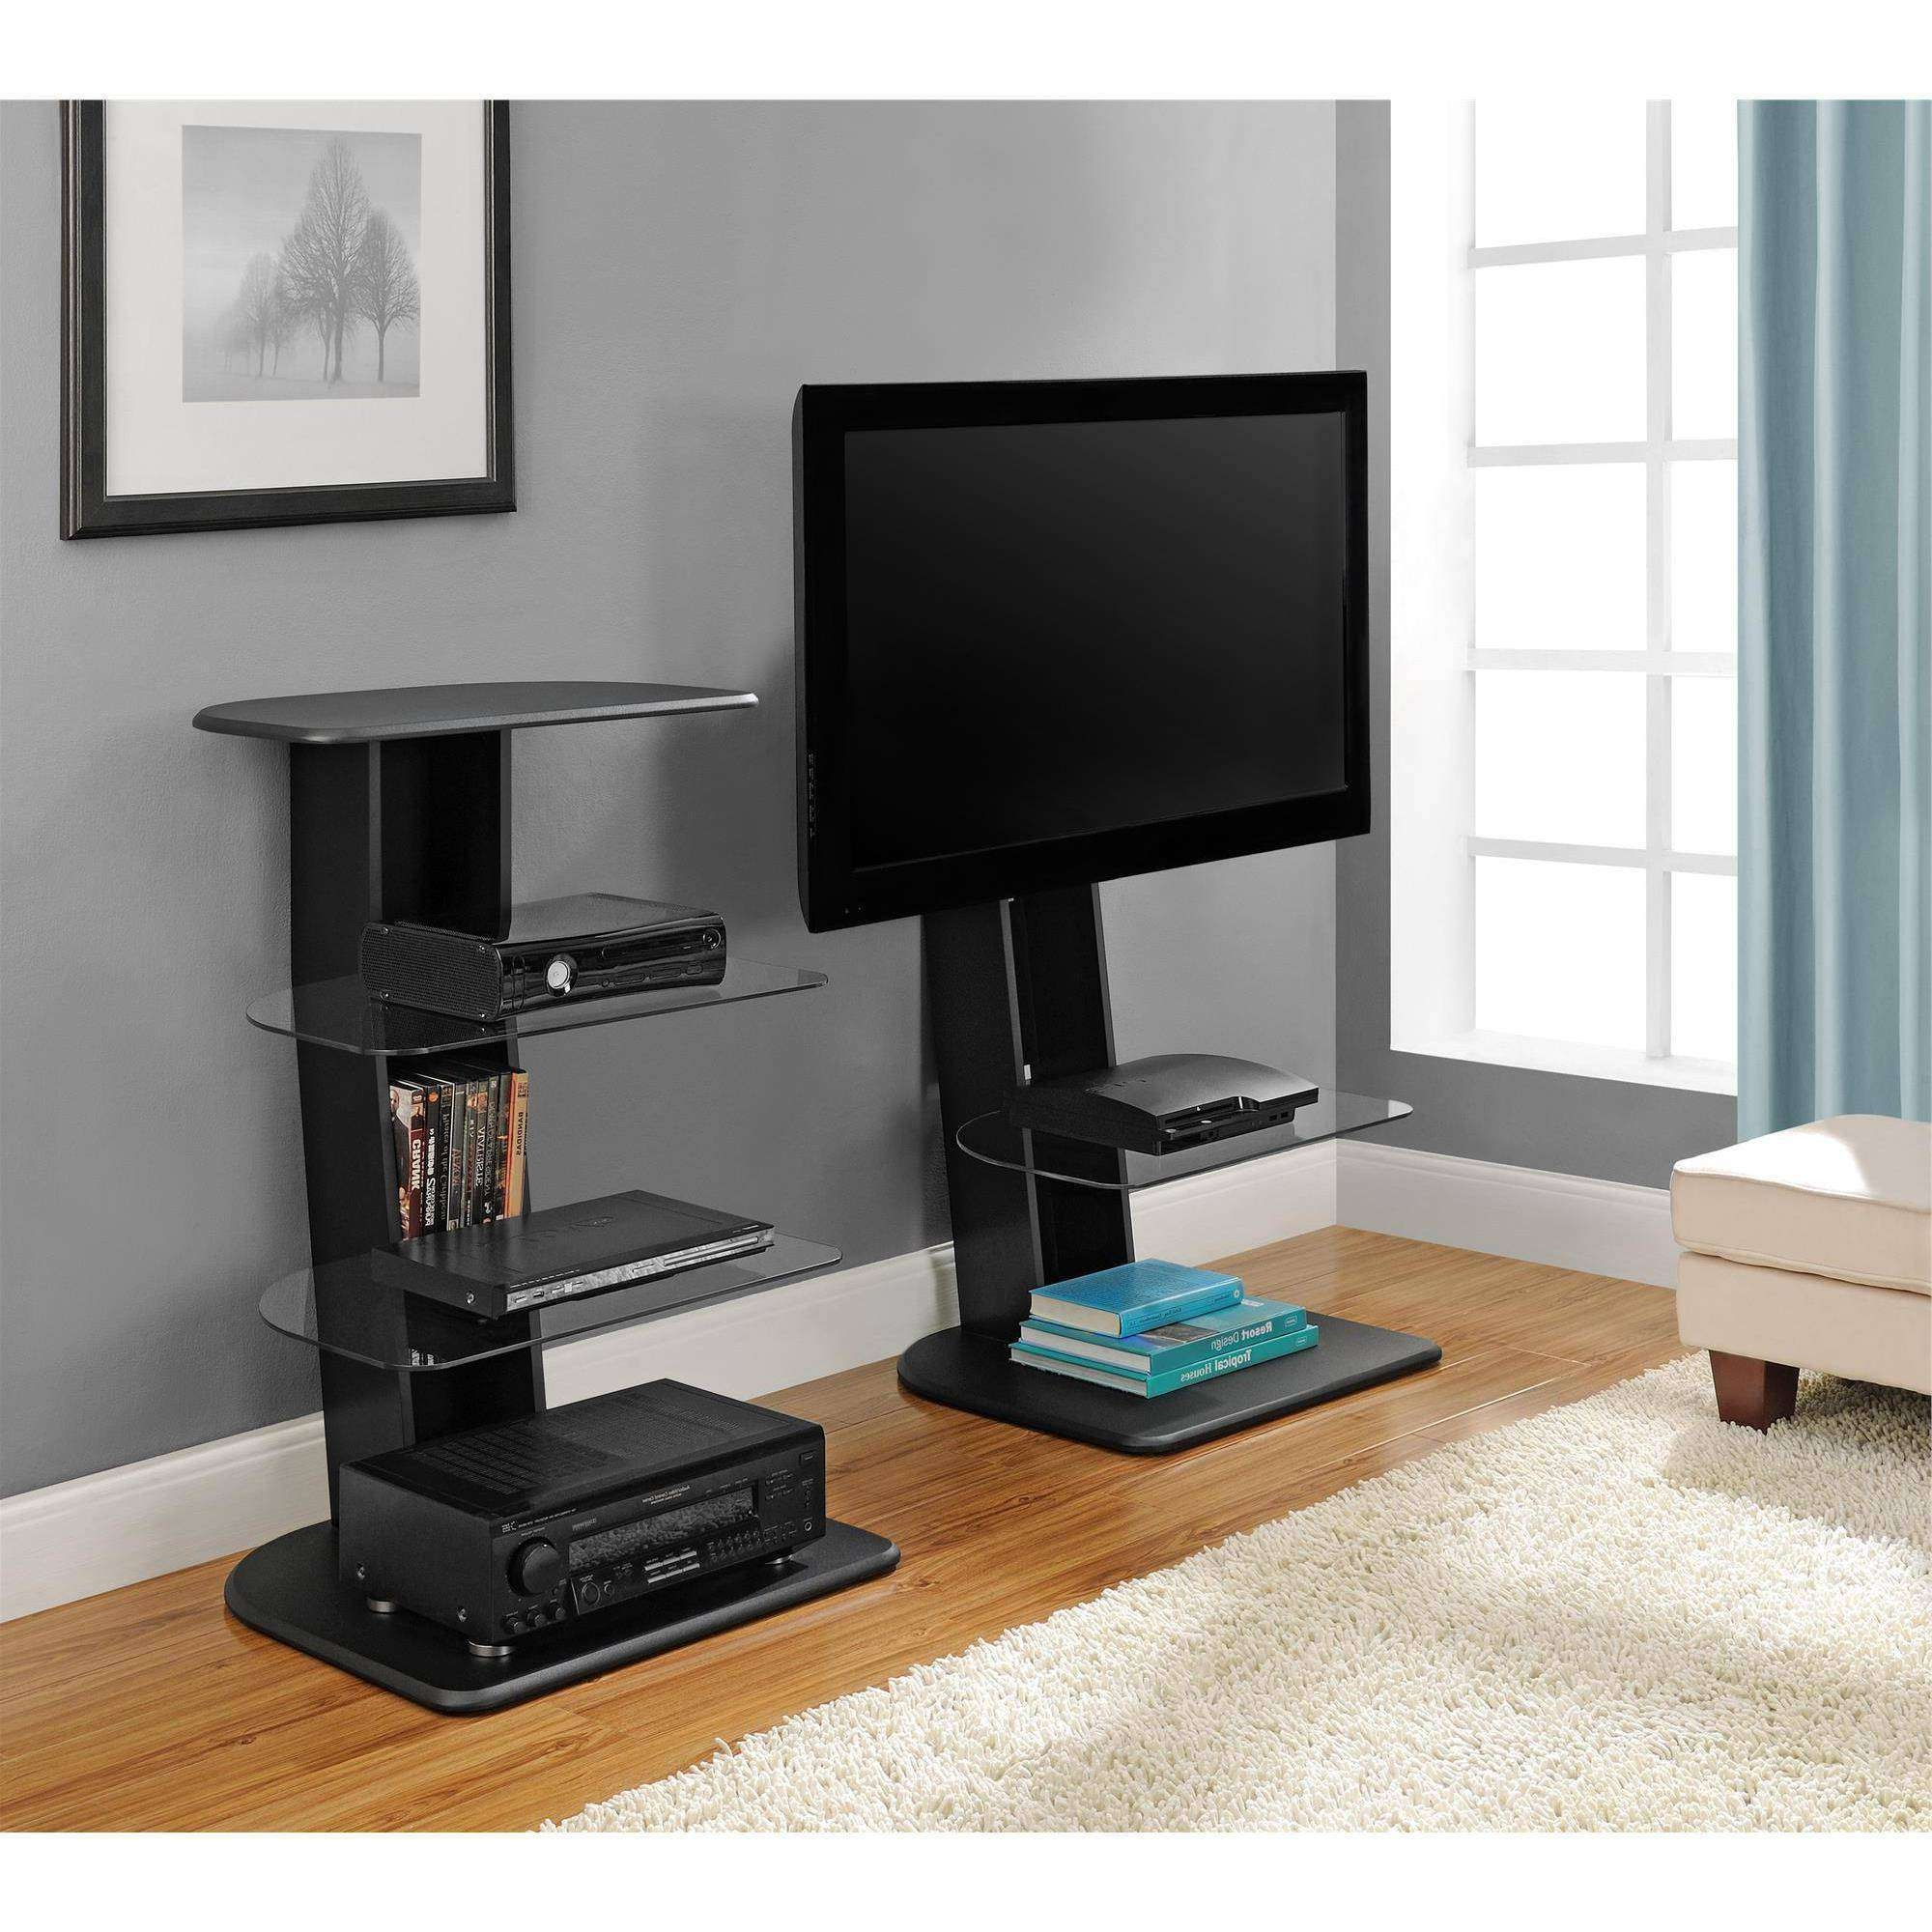 Jolly Mirror Base Together With Chintaly Imports Swivel Tempered Intended For Wood Tv Stands With Swivel Mount (Gallery 9 of 15)